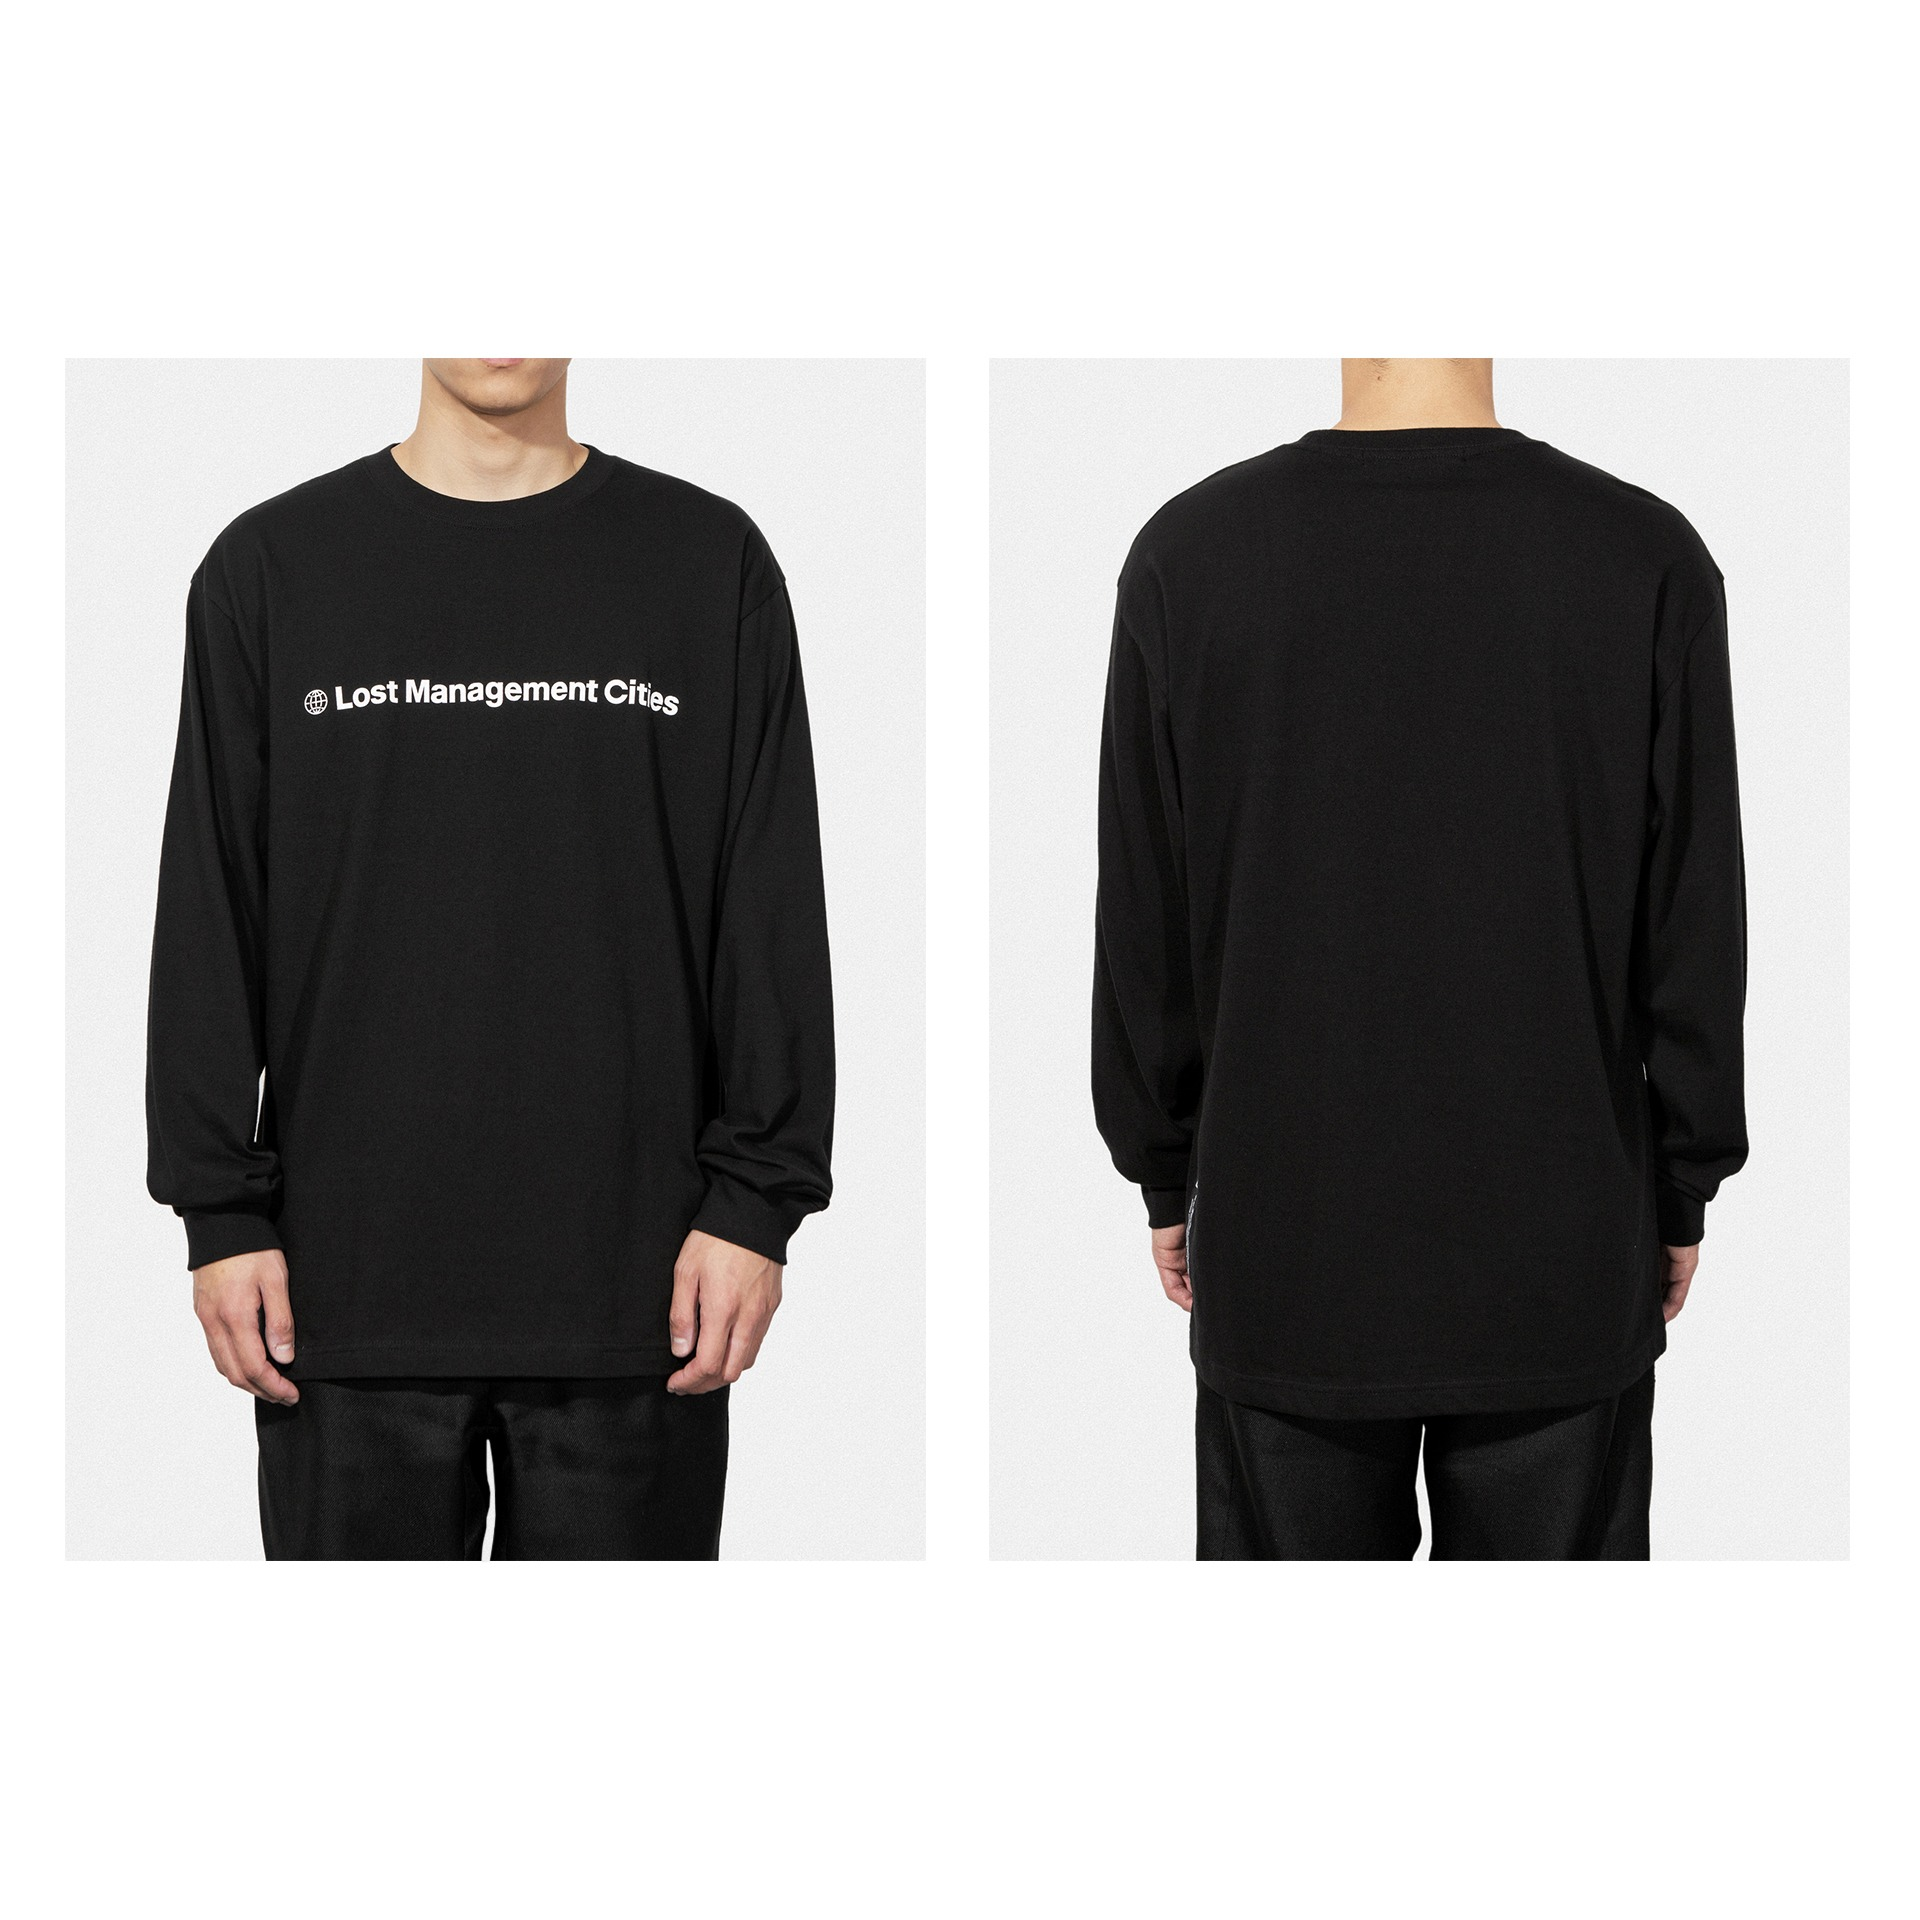 LMC FN OG LONG SLV TEE 2pack